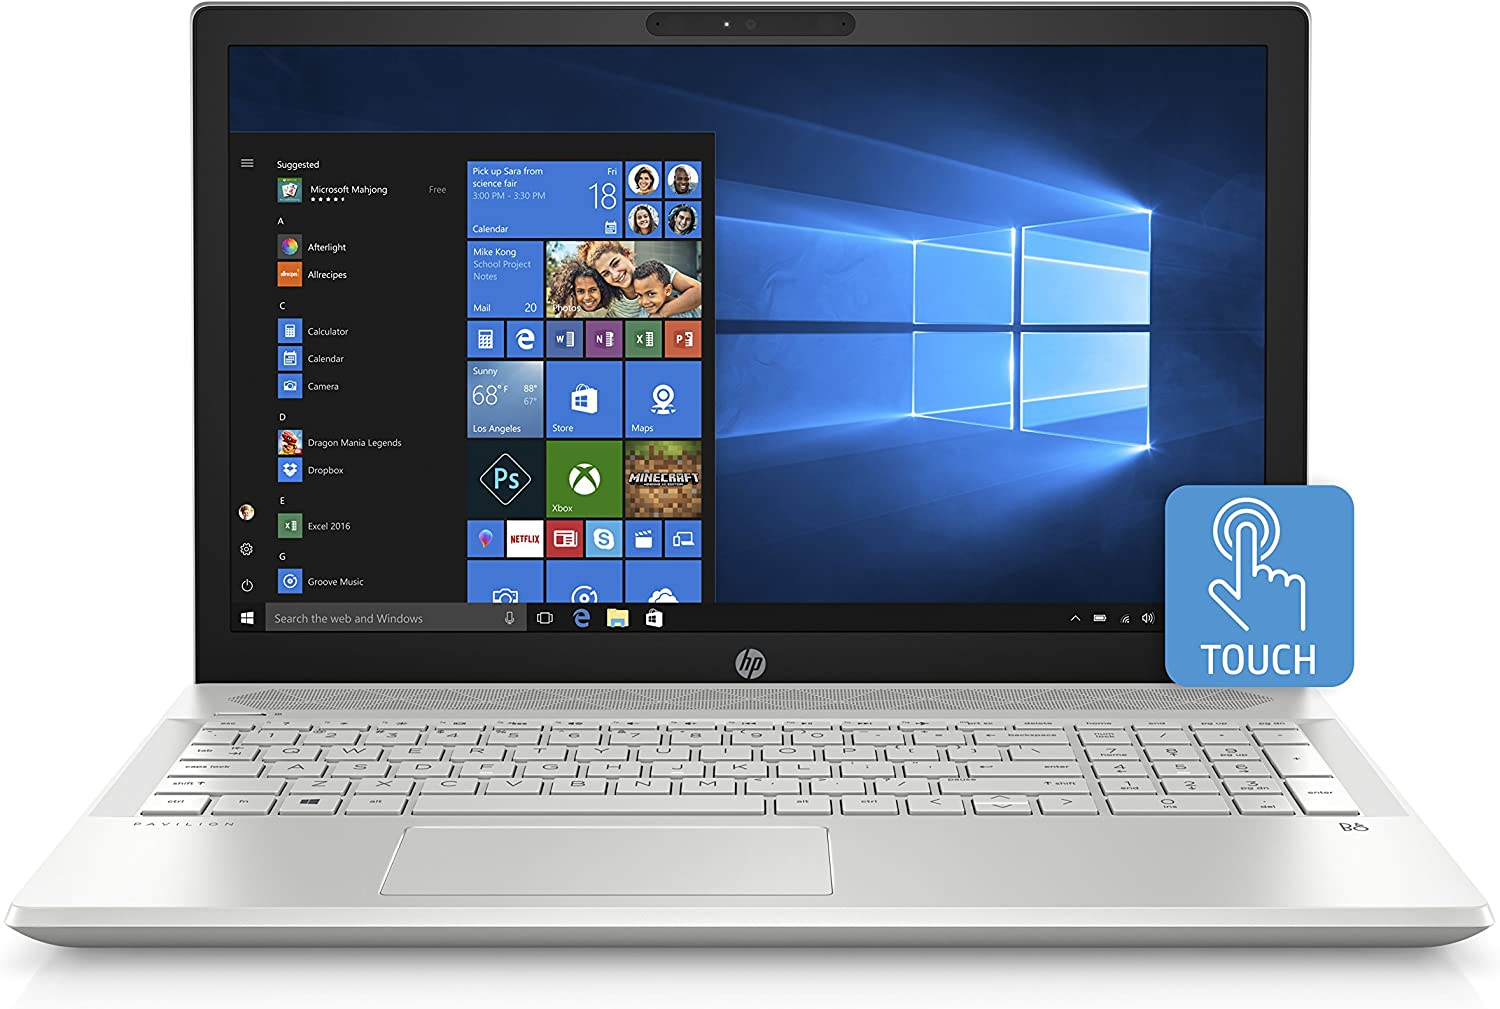 HP Pavilion 15-inch Laptop, Intel Core i5-8250U Processor, 8 GB RAM, 1 TB Hard Drive, Windows 10 Home (15-cu0010nr, Silver)